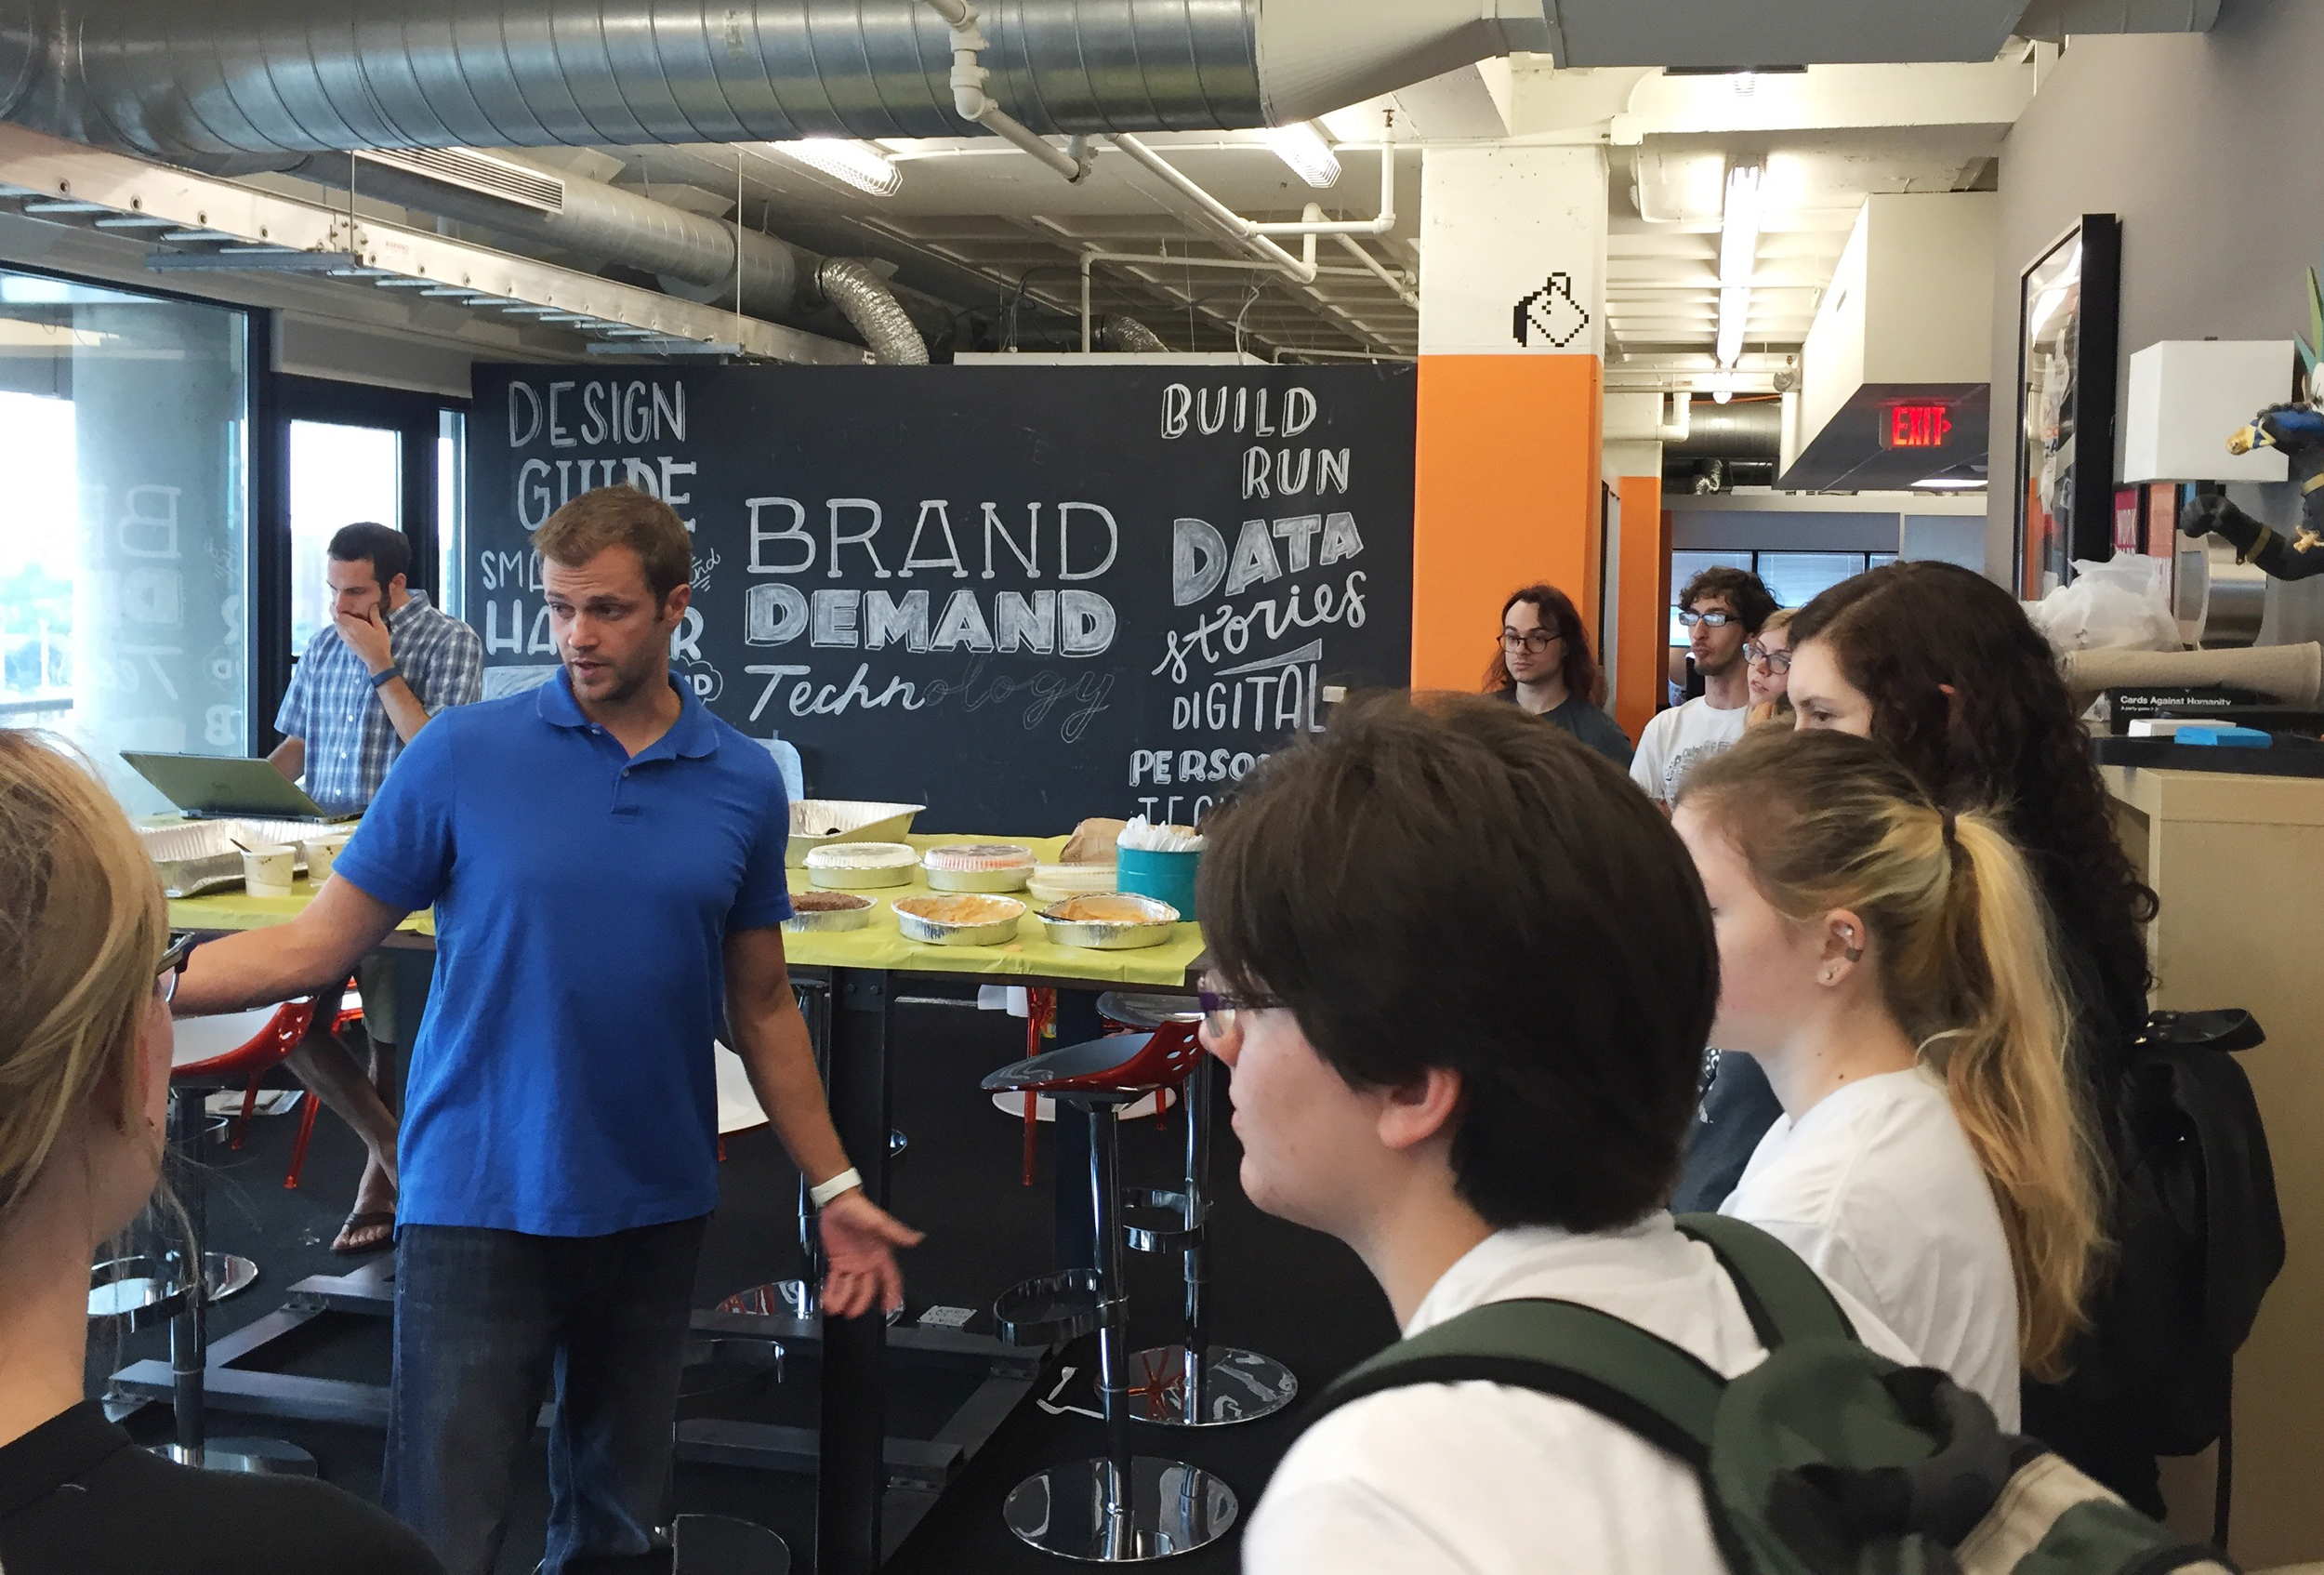 Tim Frost, Creative Director at r2i, led us on a tour of their space.